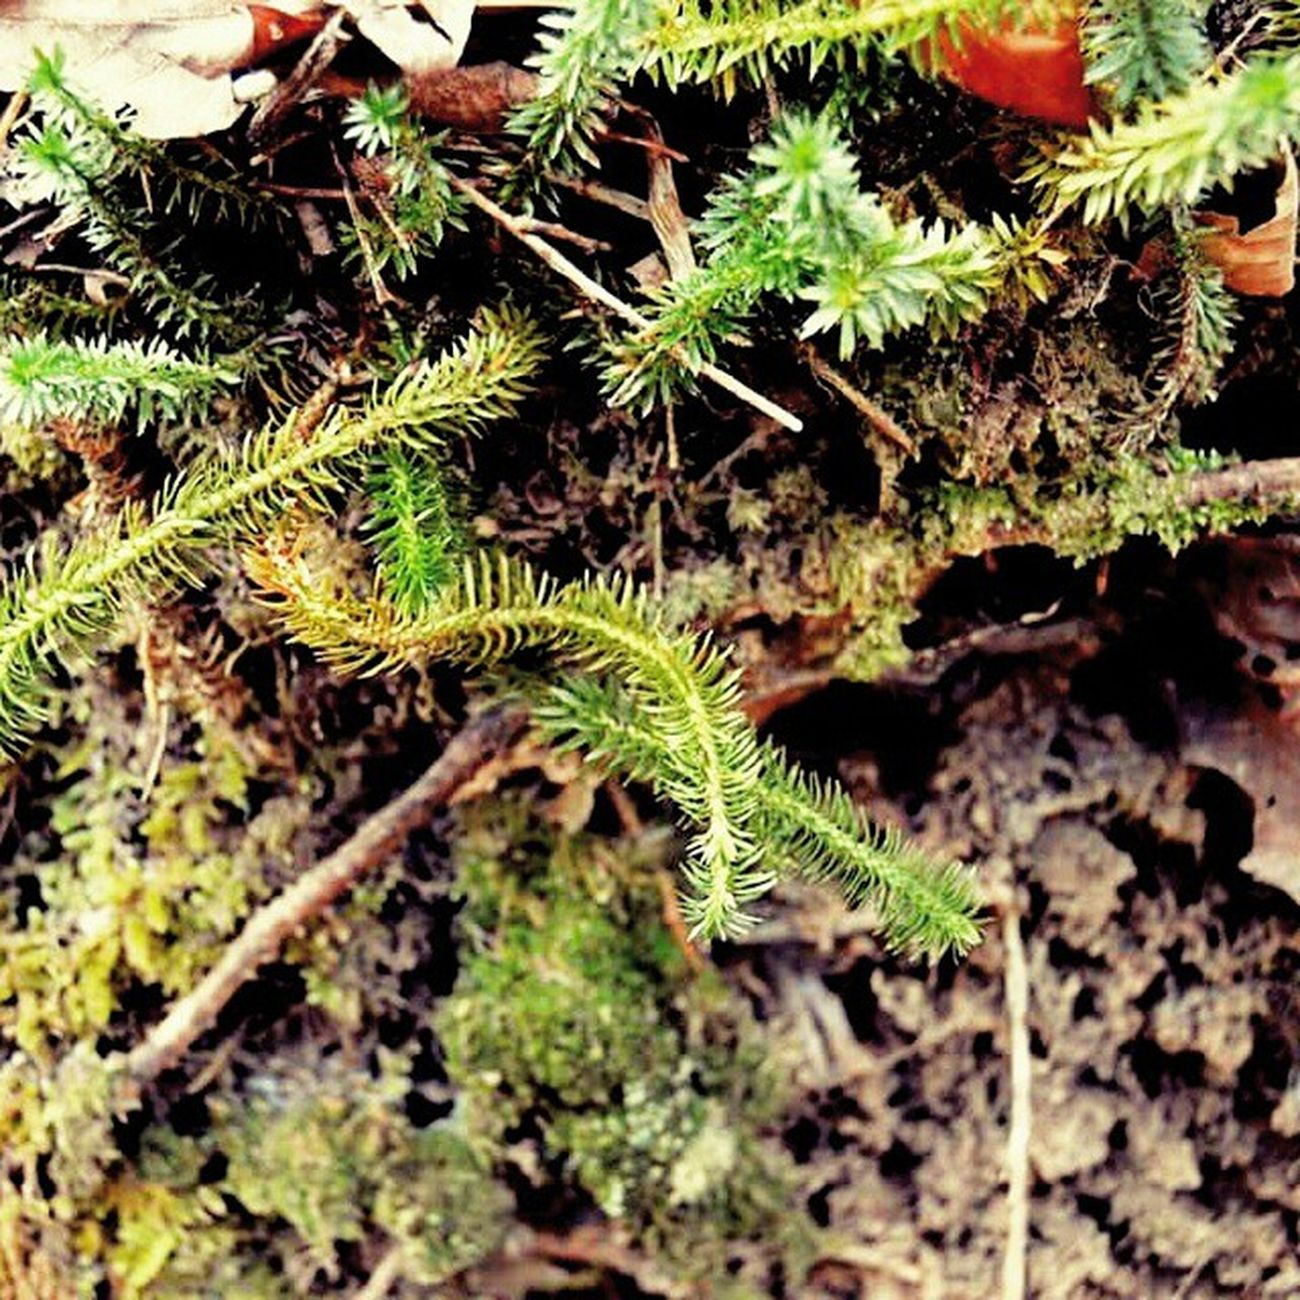 Babypinetrees Outdoorlovers Naturehippys Seasons appalachia igers_of_wv bns_ladies capturethewild fiftyshades_of_nature forests ic_nature jj_justnature mountainstate nature_up_close phototag_nature ptk_nature ruralexploration rsa_nature wv_igers trb_rural wv_nature